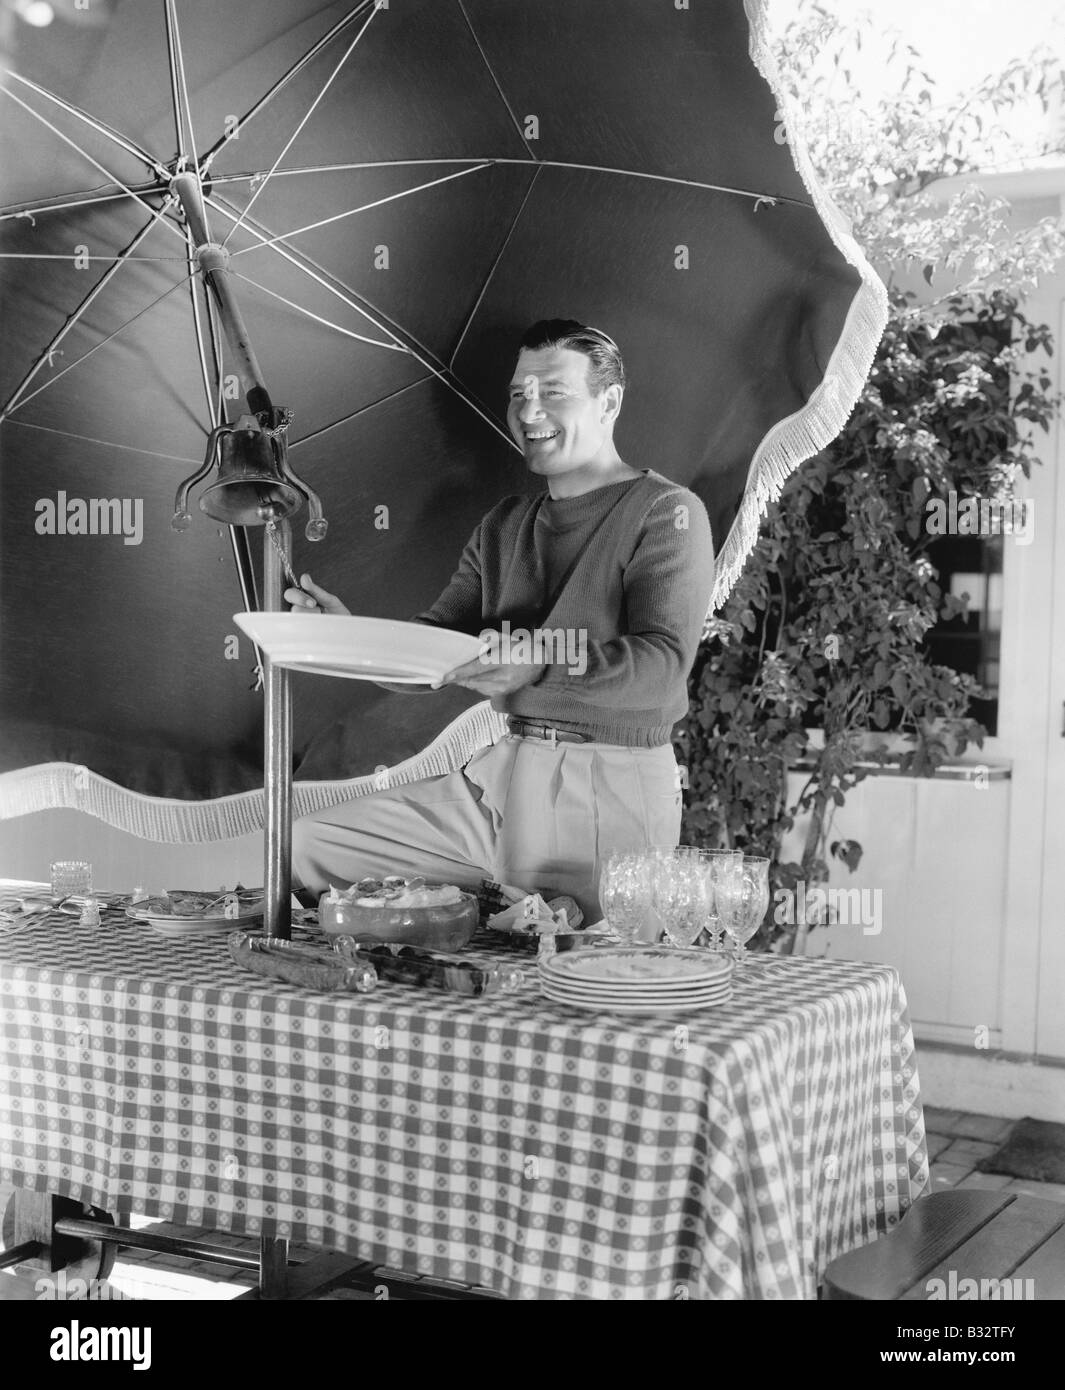 Man standing at a picnic table and holding a plate - Stock Image